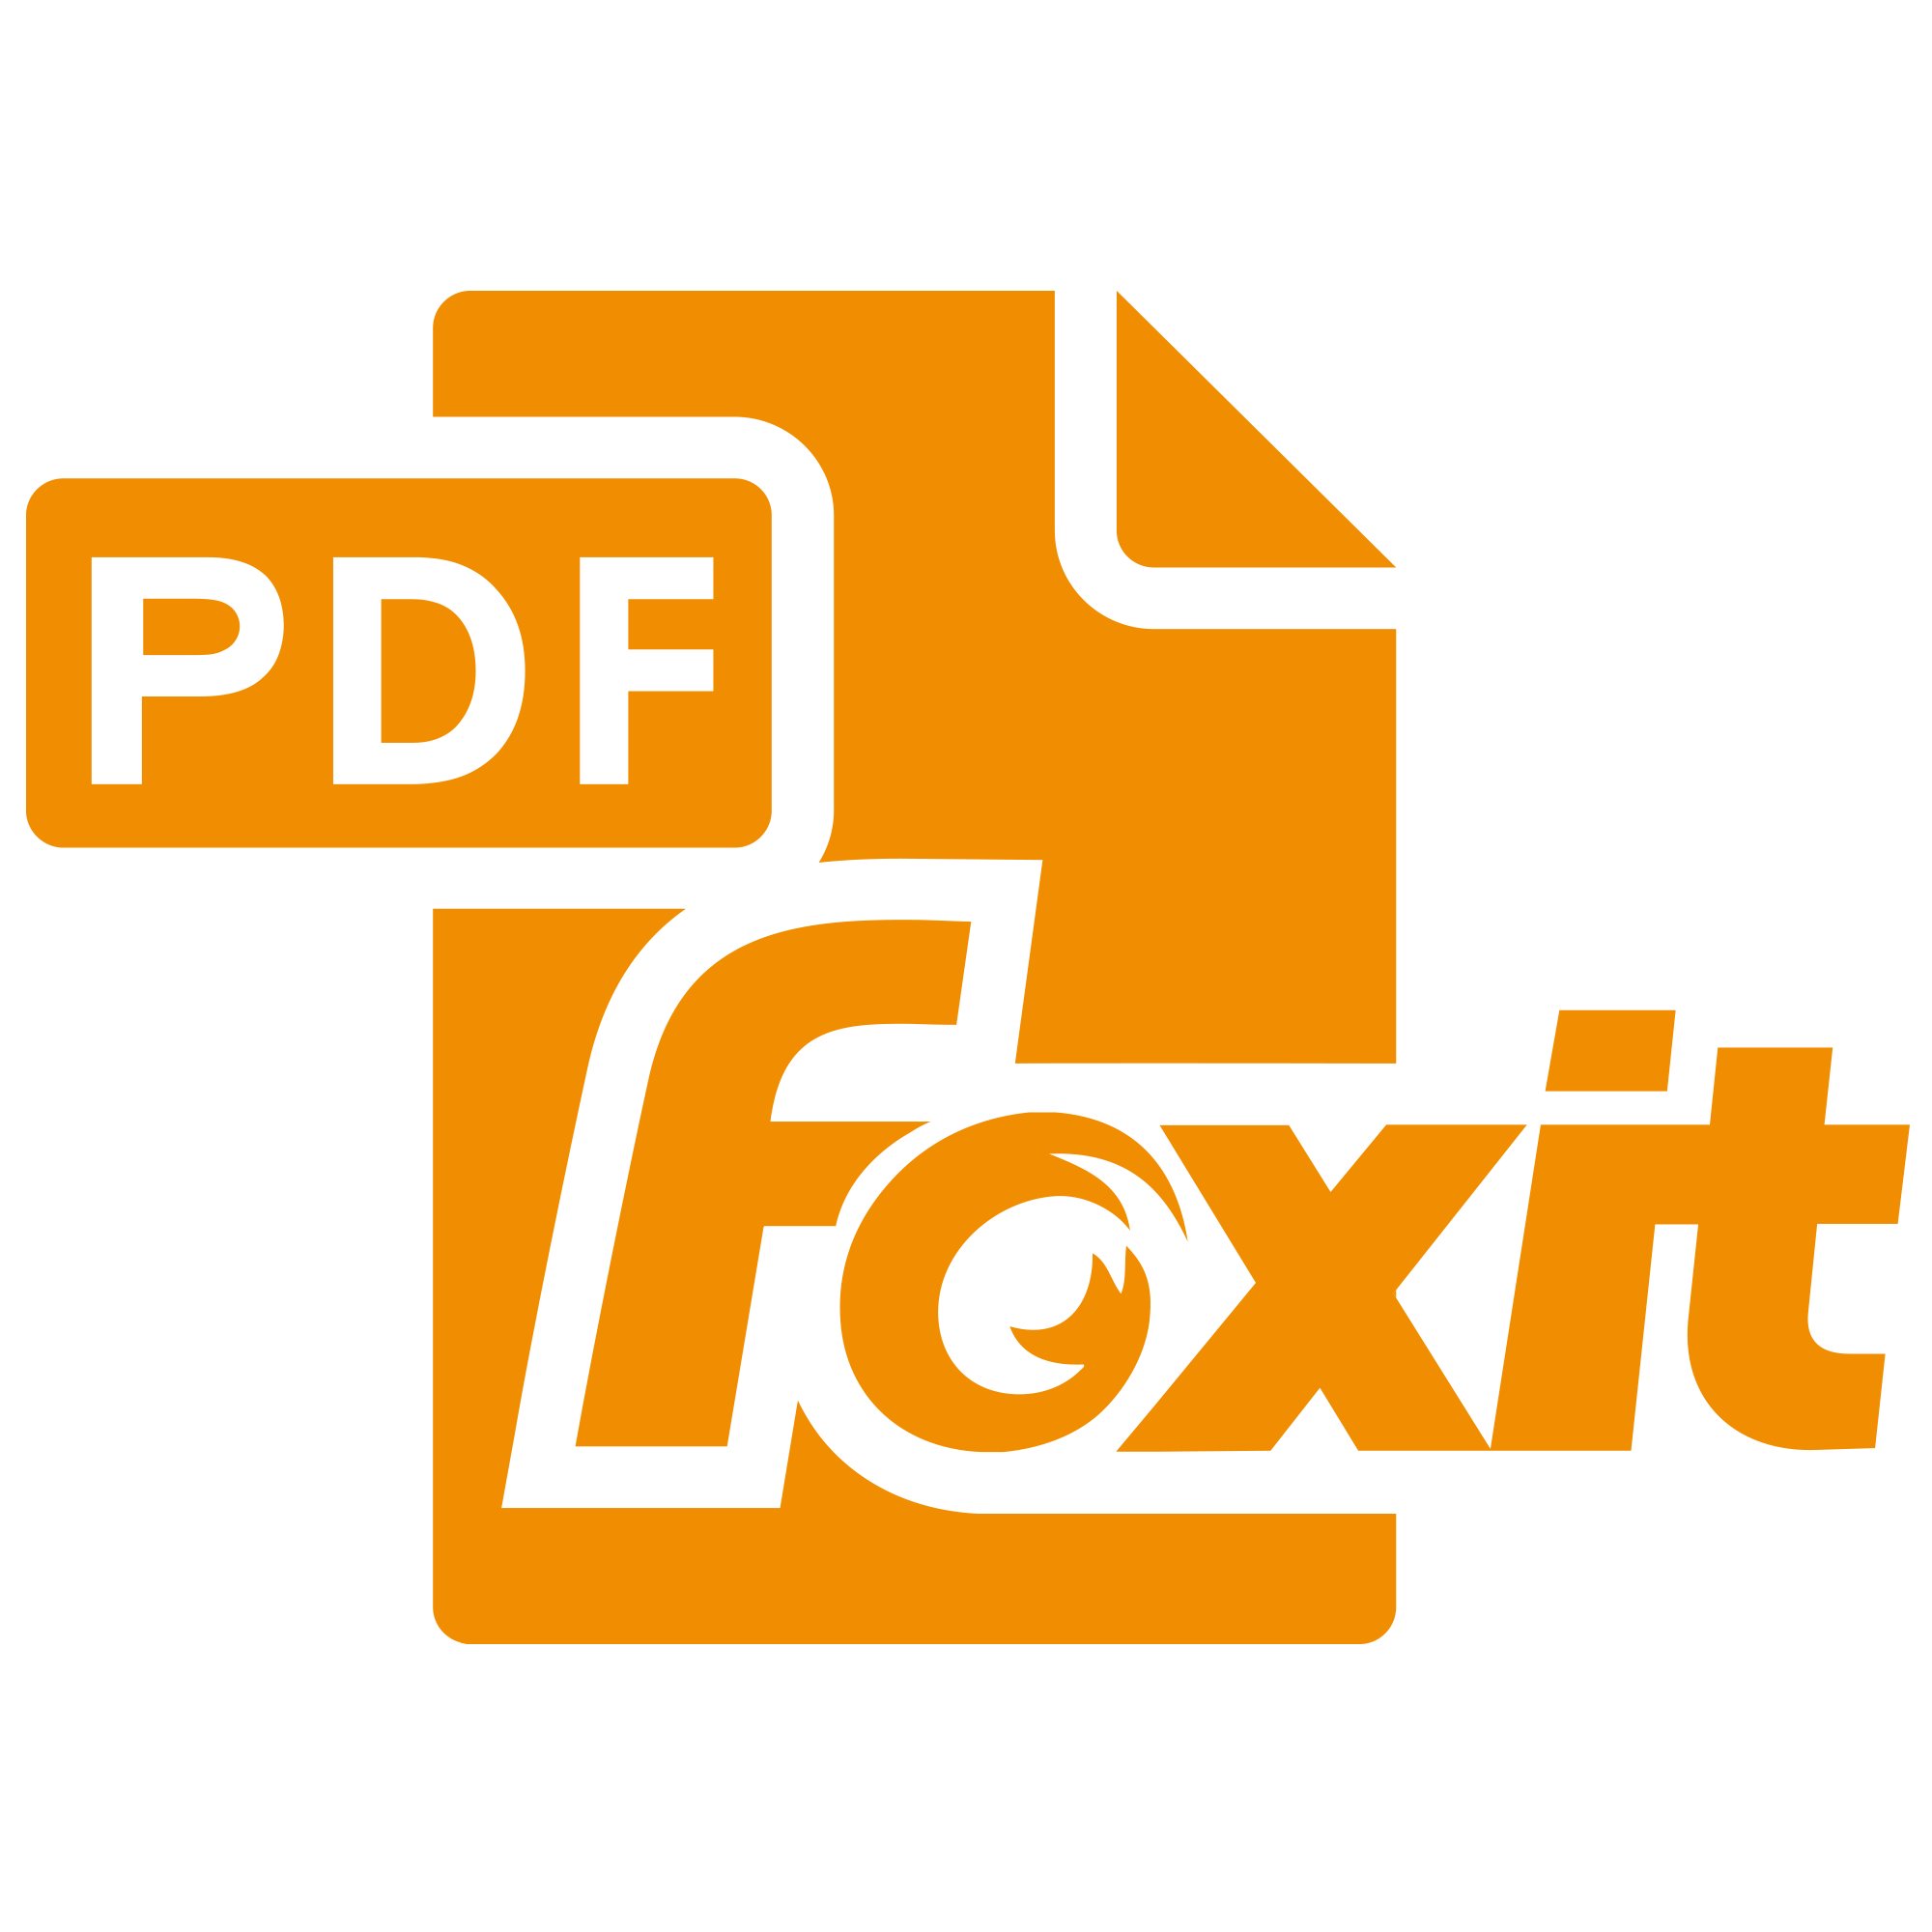 Télécharger Foxit Reader gratuit (Windows)